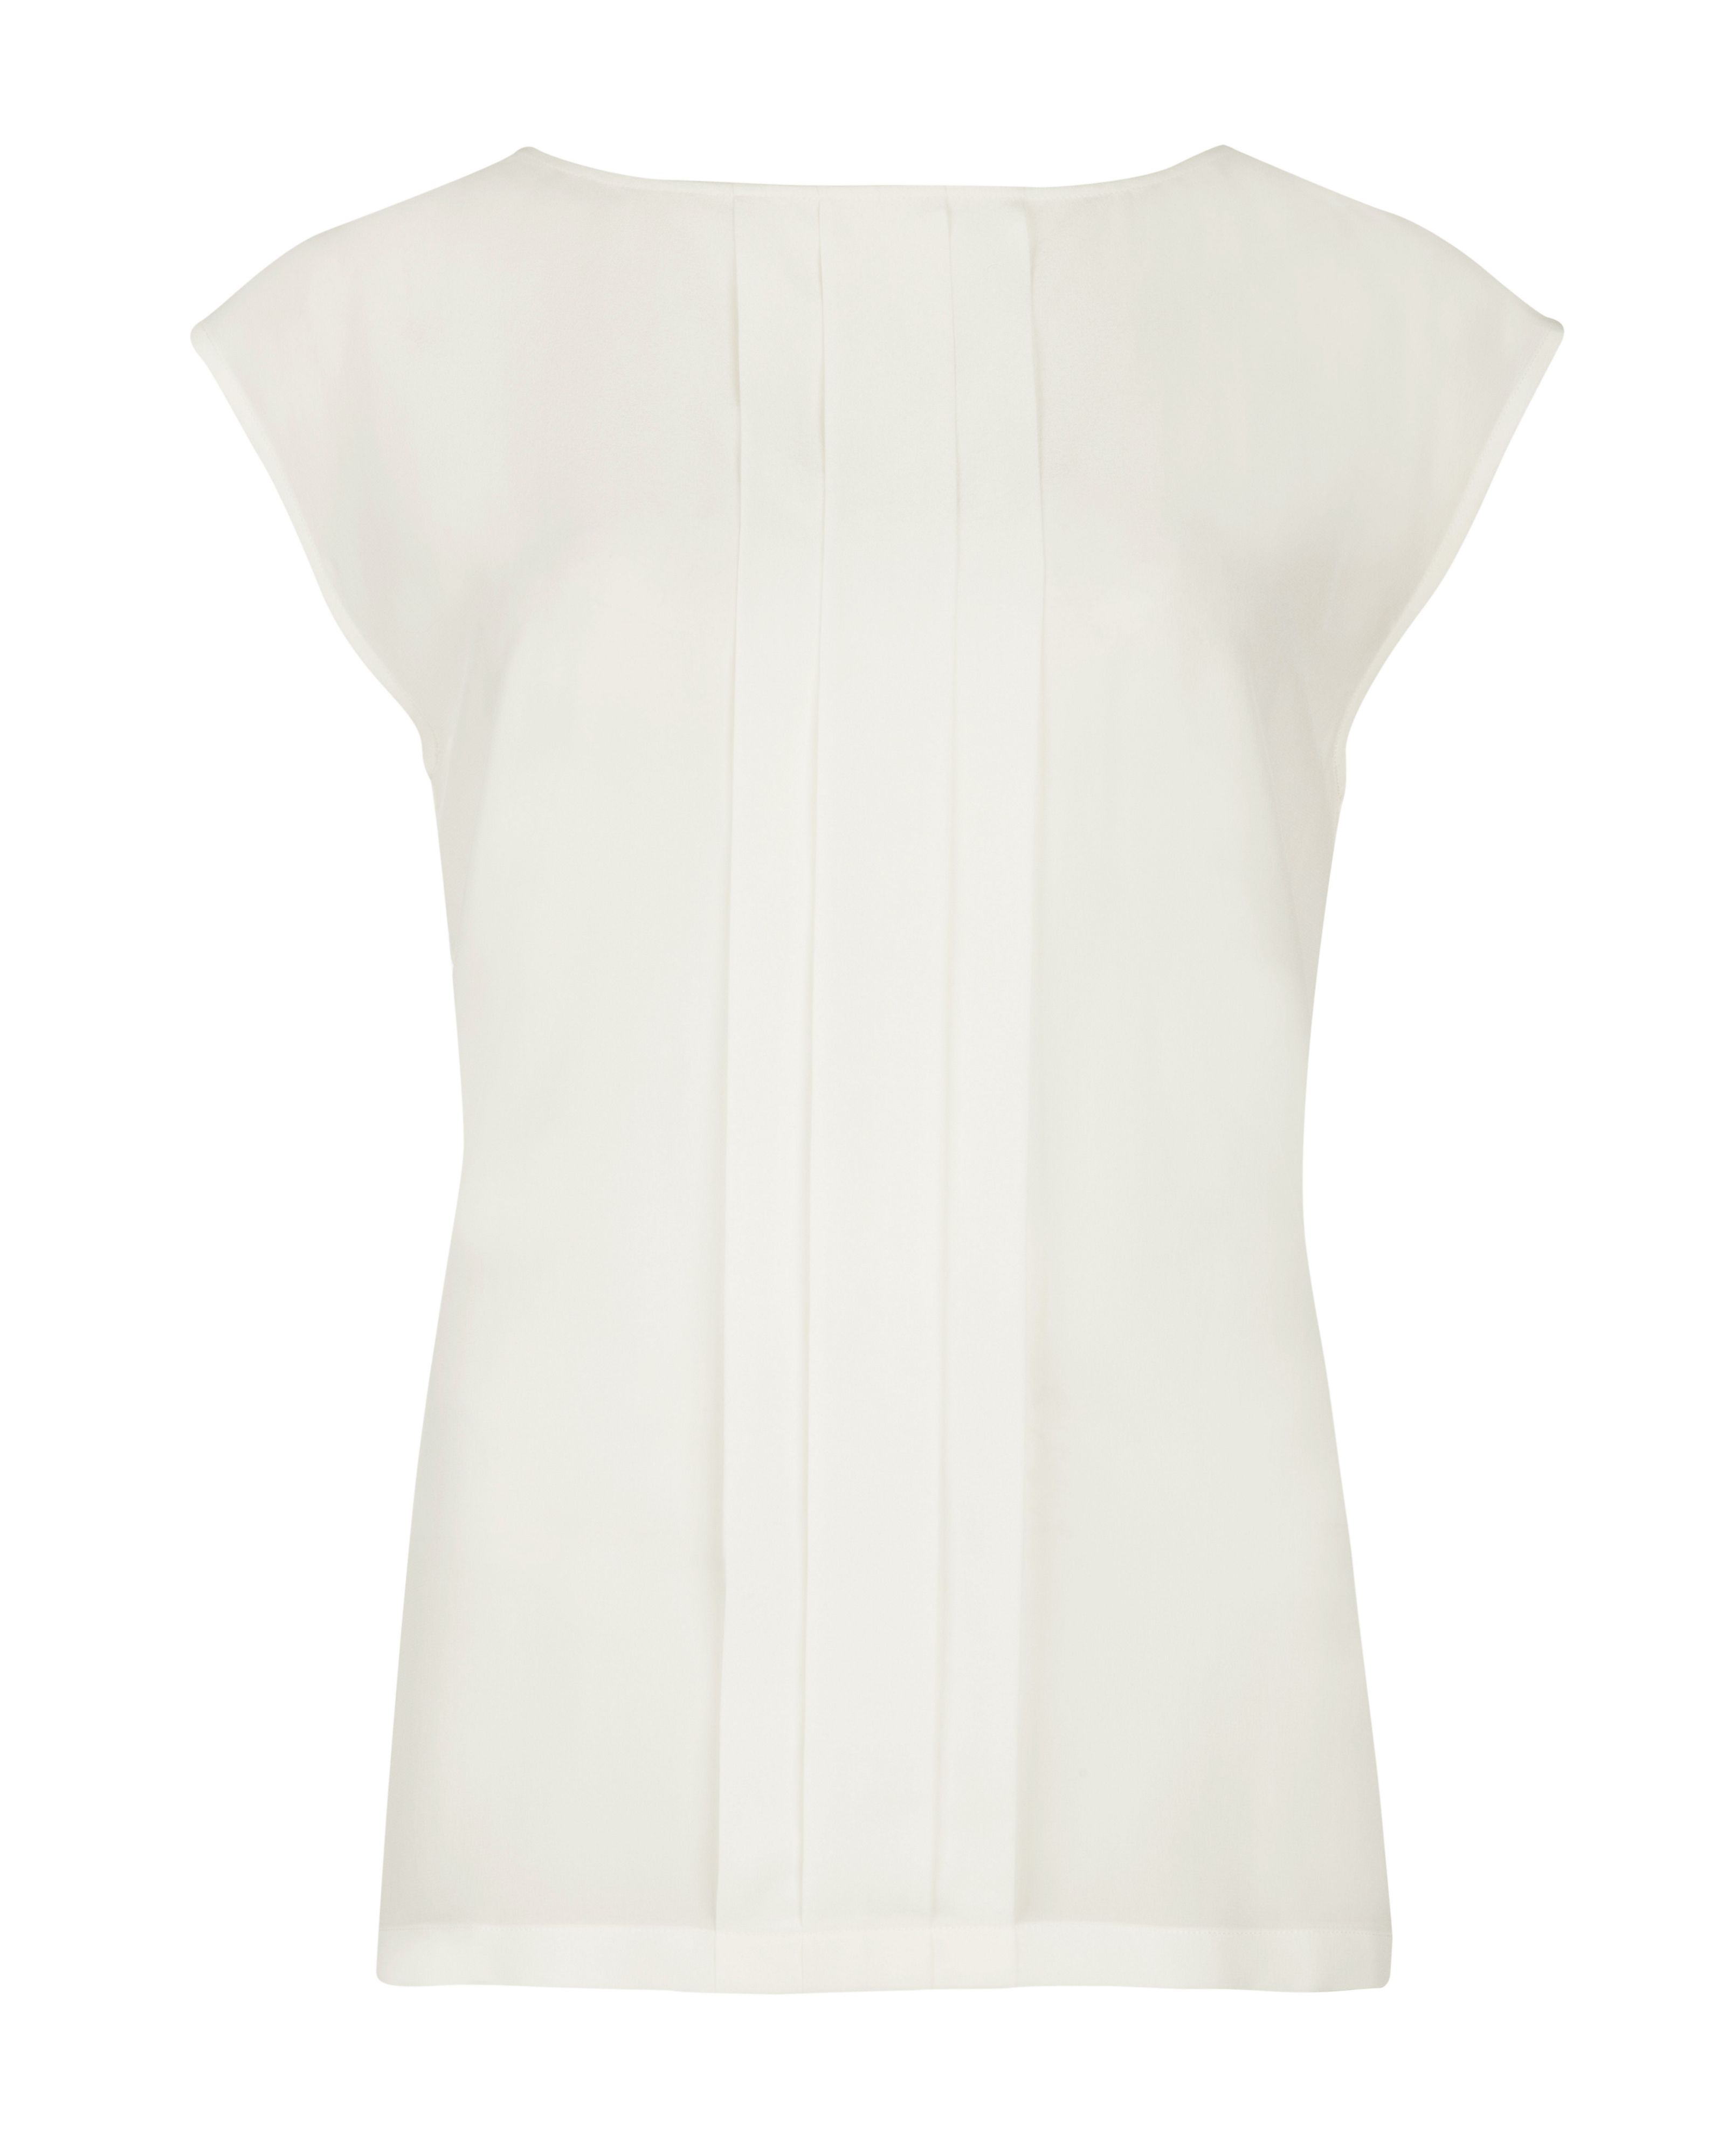 Violla pleated panel top